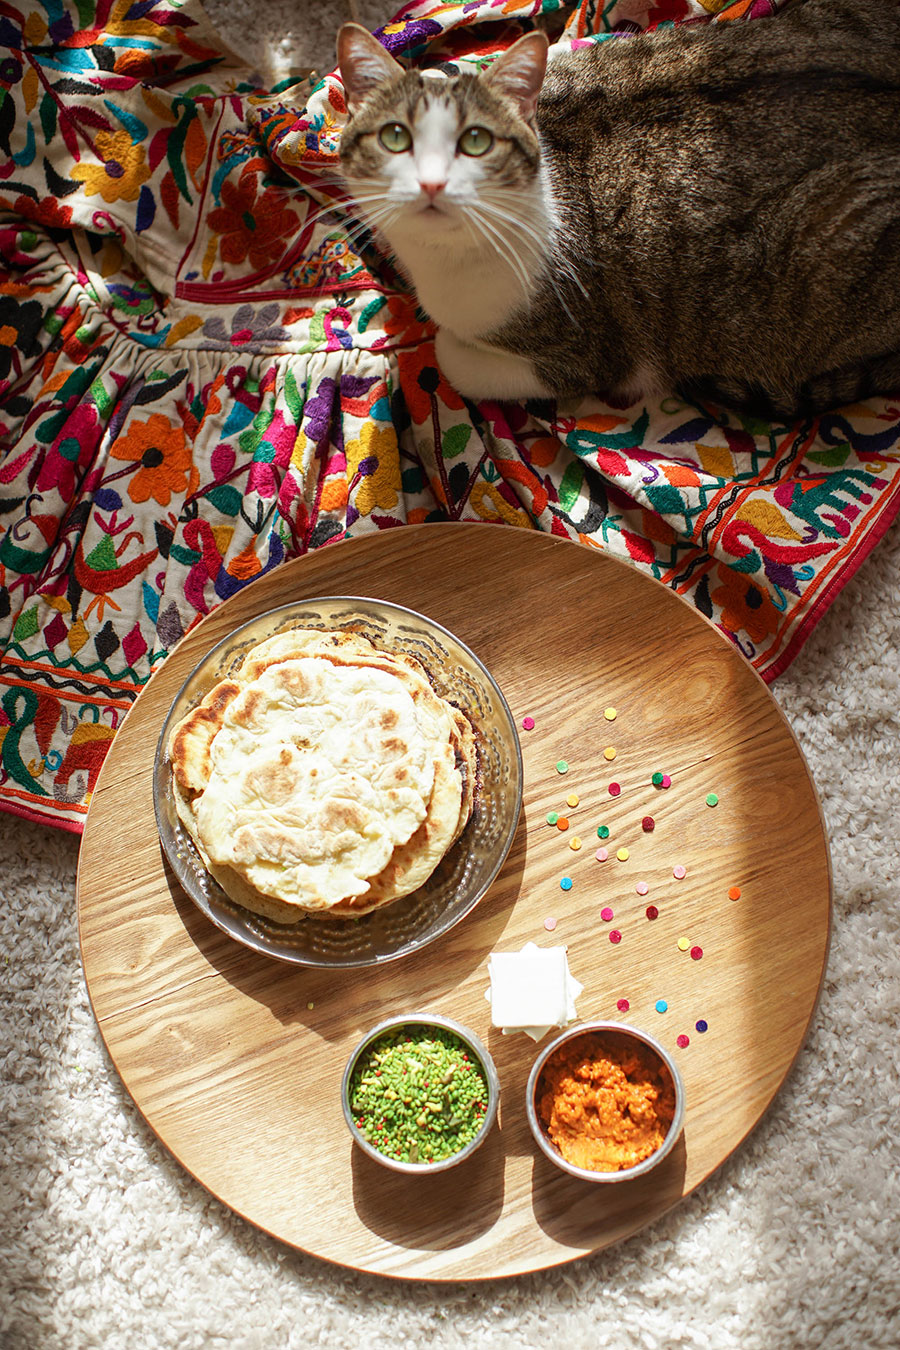 make-my-lemonade-india-do-it-yourself-cheese-naan-4